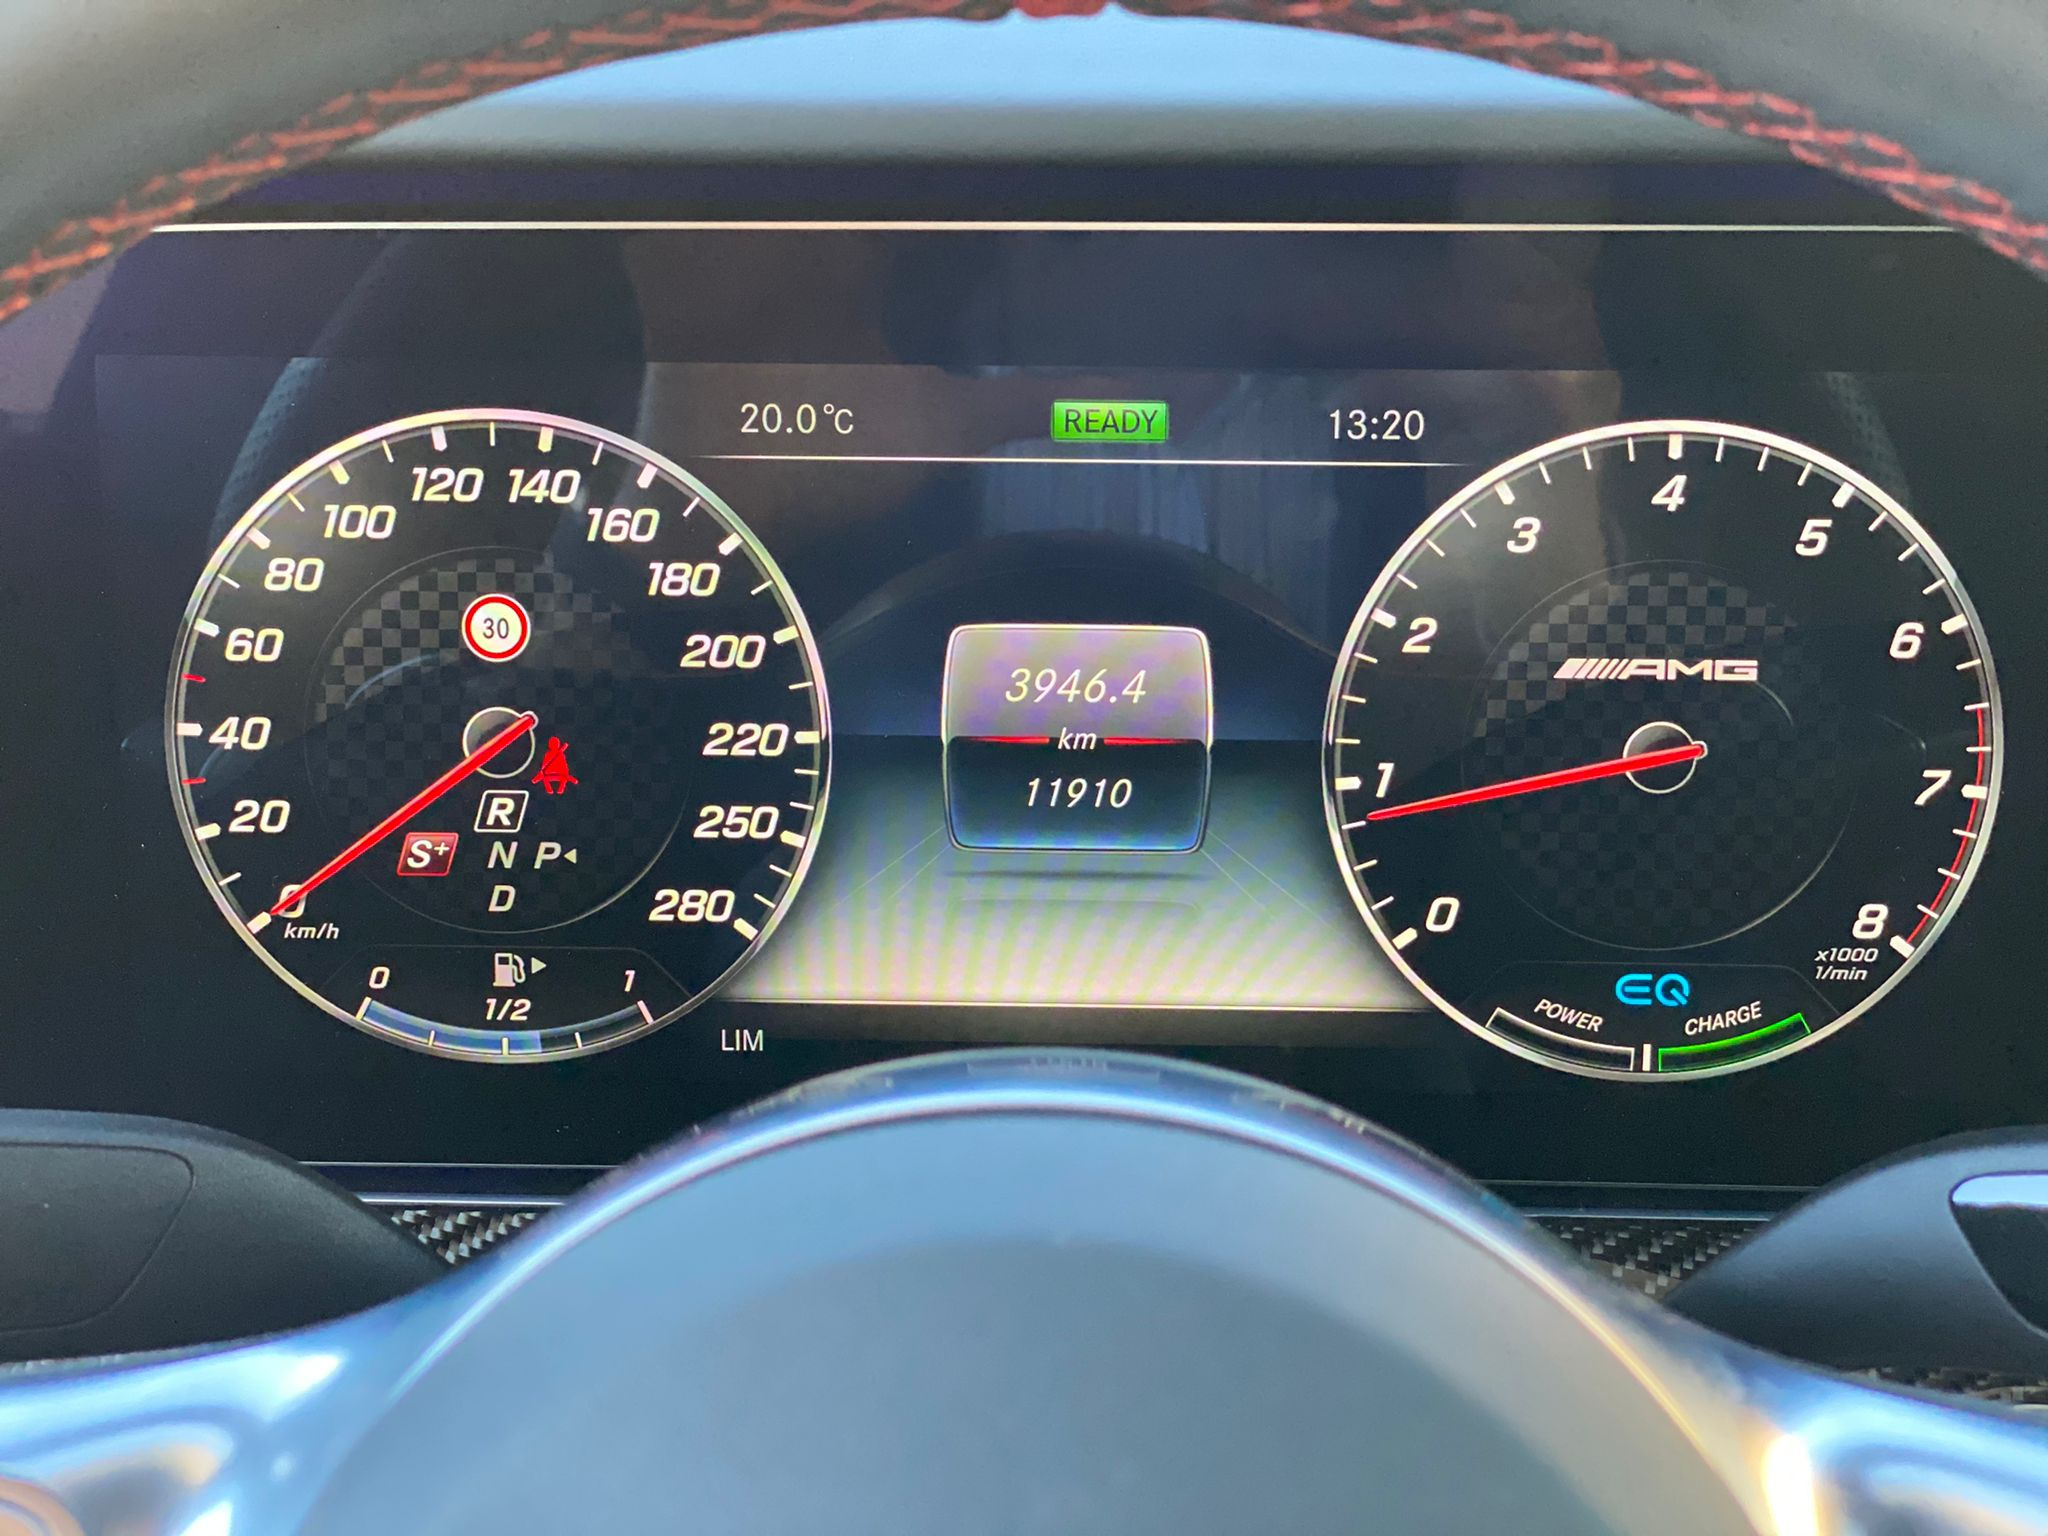 MERCEDES-AMG CLS 53 EQ 435 CV 4MATIC+